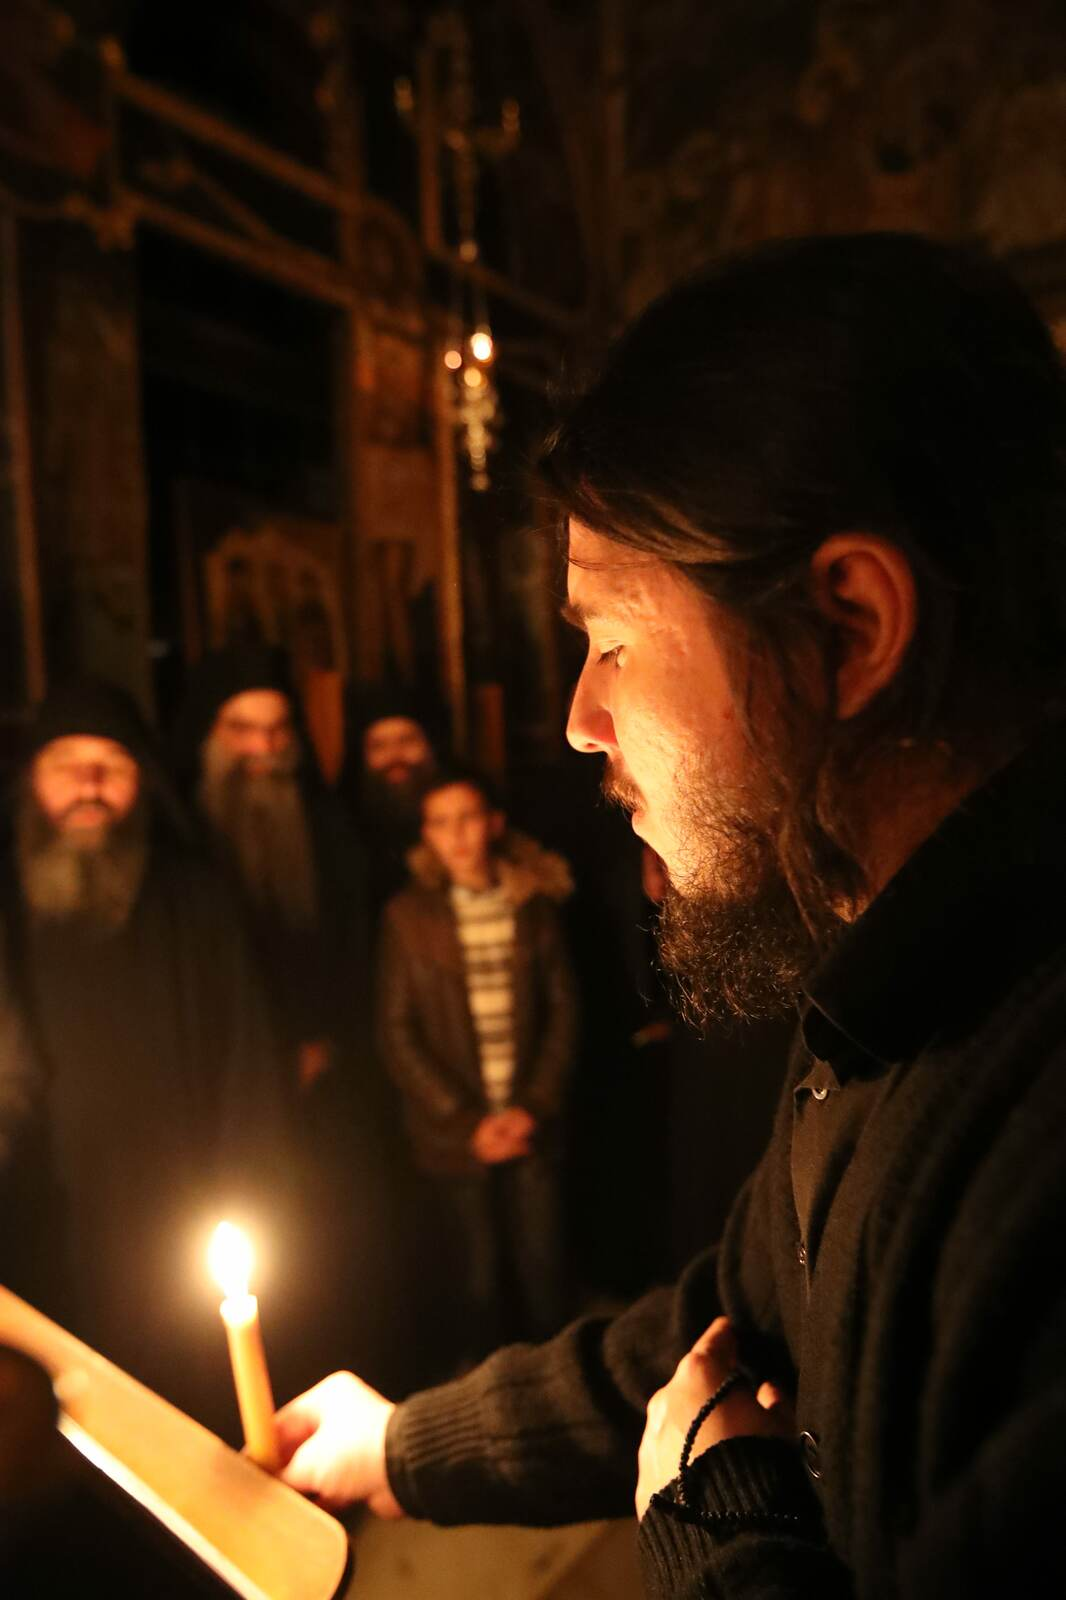 miracles - Ascetic Experience, Vatopaidi (Vatopedi), Mount Athos, Holy Mountain